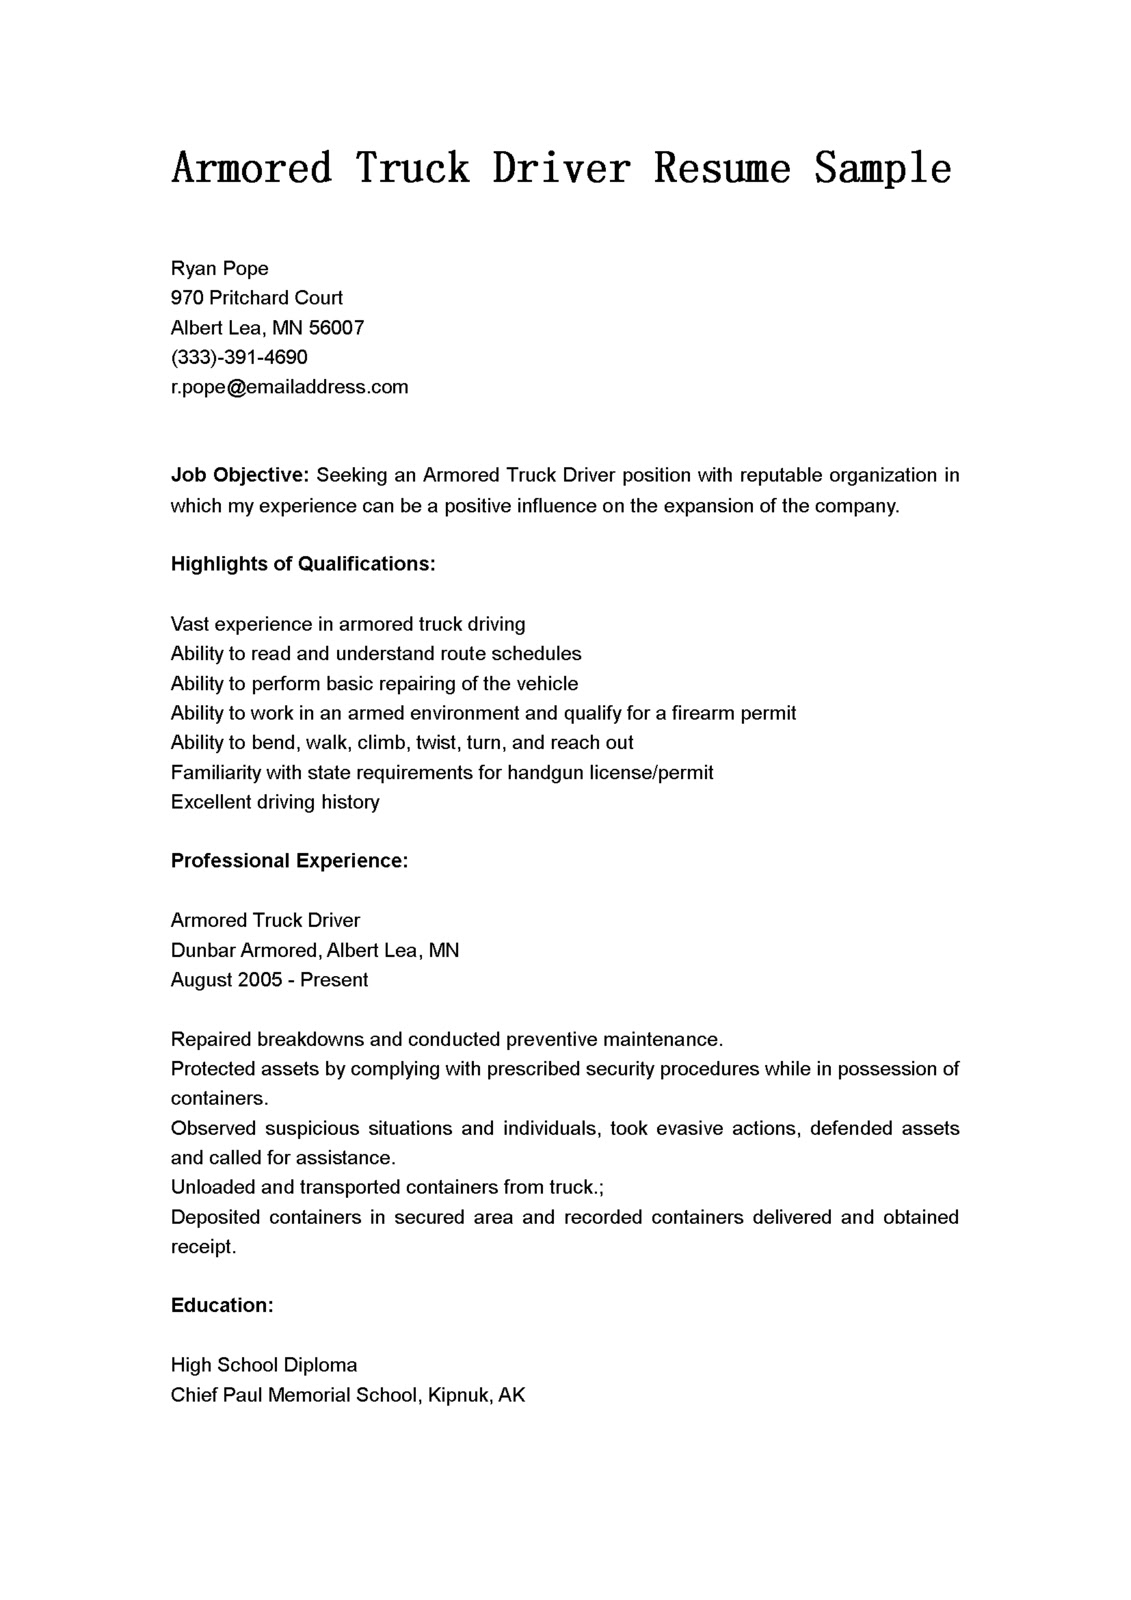 Bus Driving Resume Examples inspirational bus driver resume – Truck Driver Resume Examples